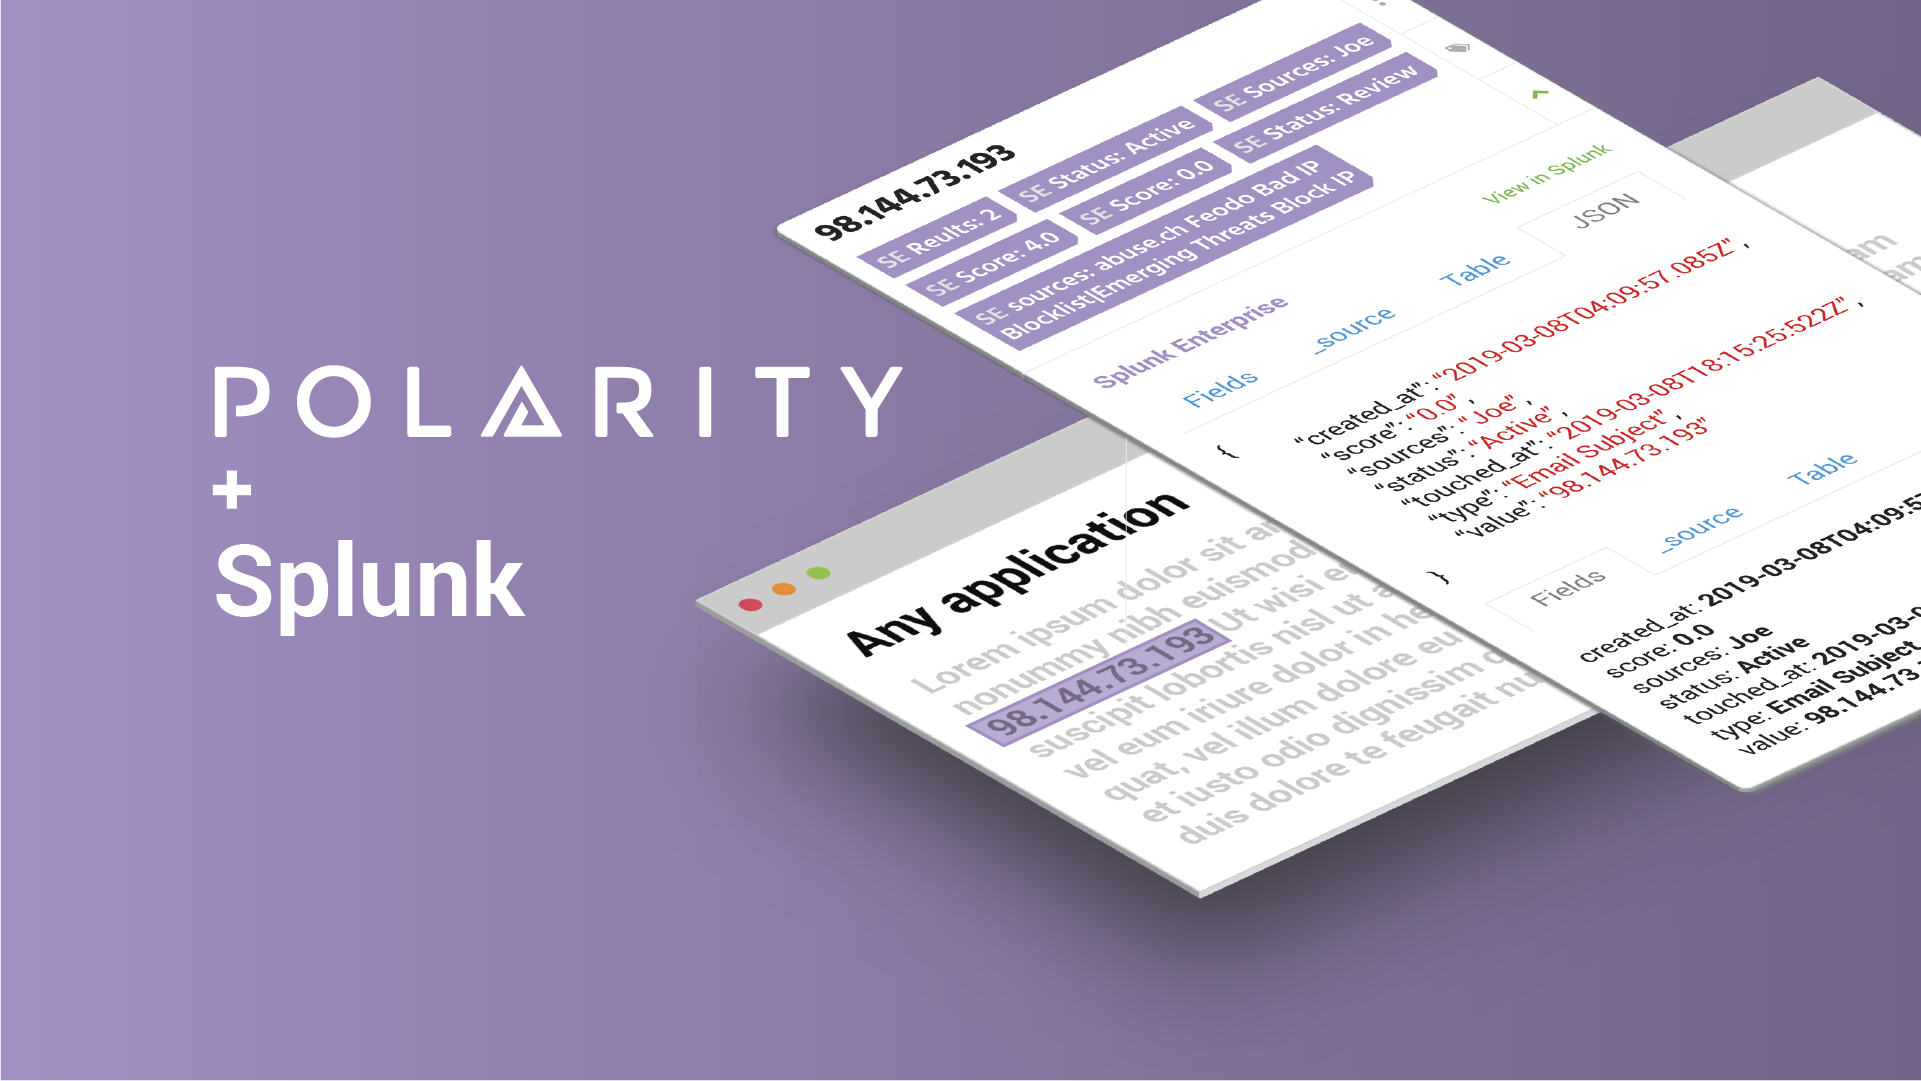 Security Teams Can Spend Less Time Querying & More Time Analyzing with Polarity's Updated Splunk Integration cover image